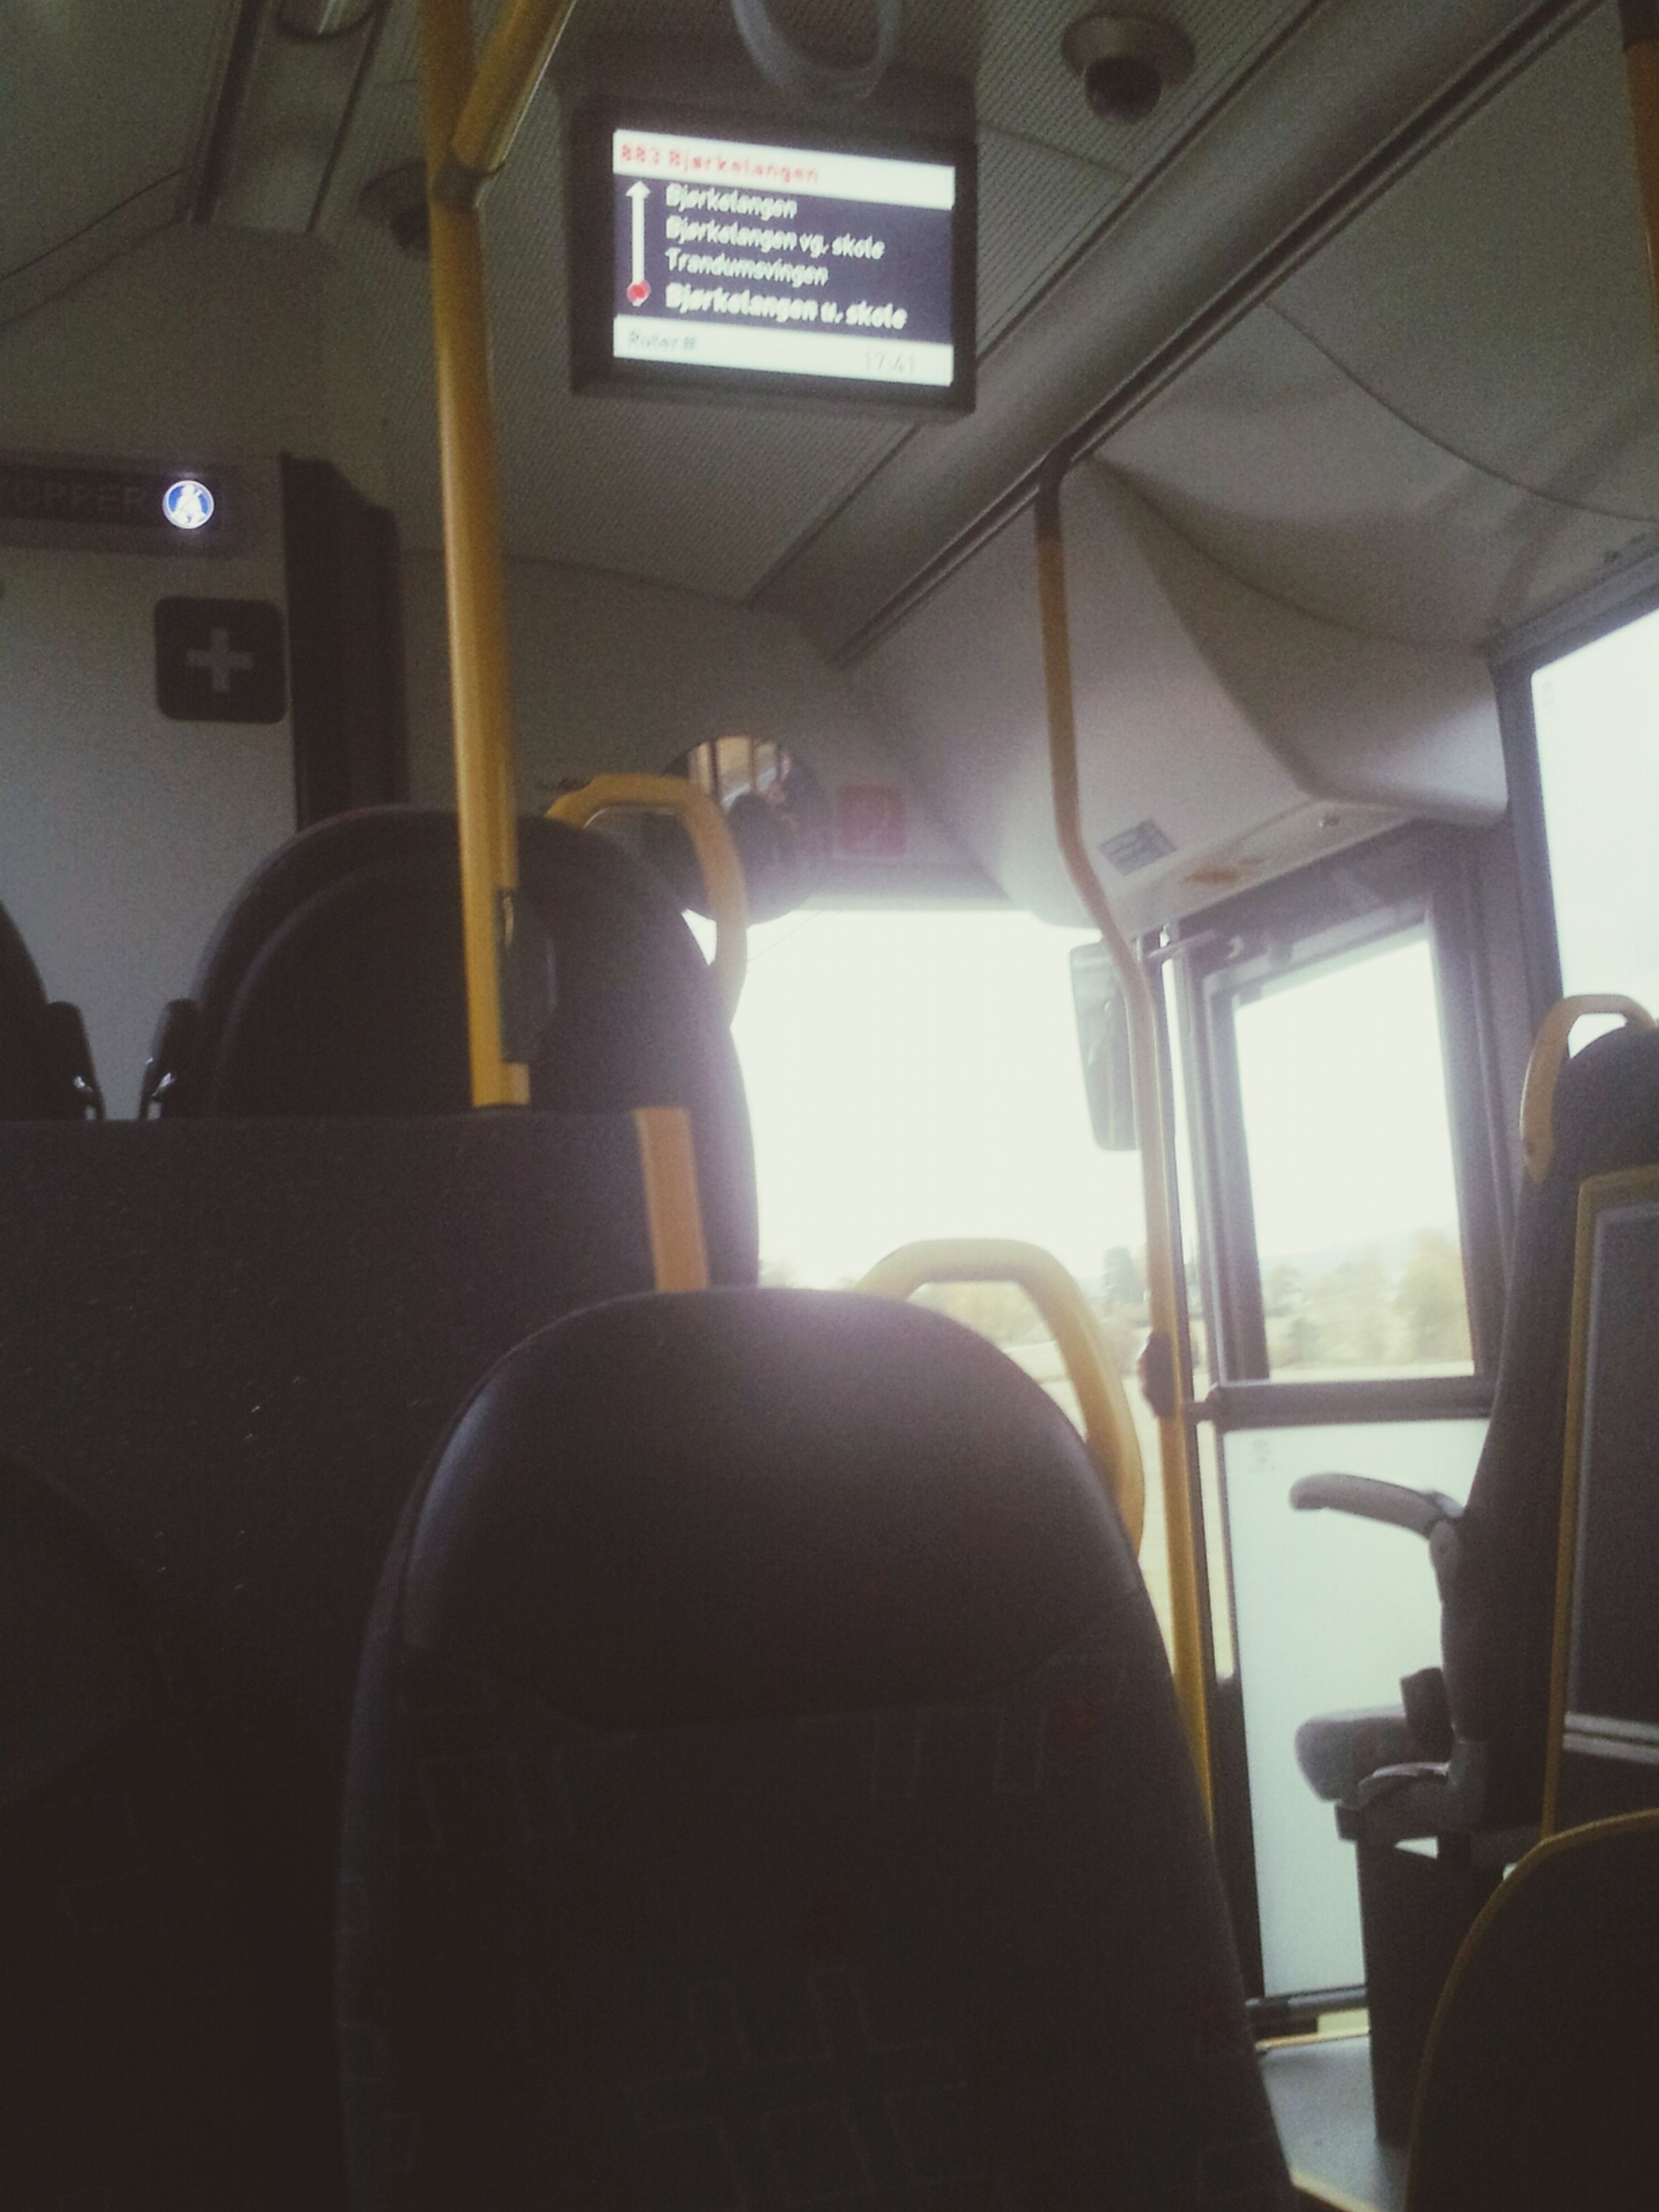 transportation, vehicle interior, indoors, mode of transport, land vehicle, car, public transportation, vehicle seat, travel, bus, window, car interior, journey, communication, windshield, train - vehicle, transparent, glass - material, technology, one person